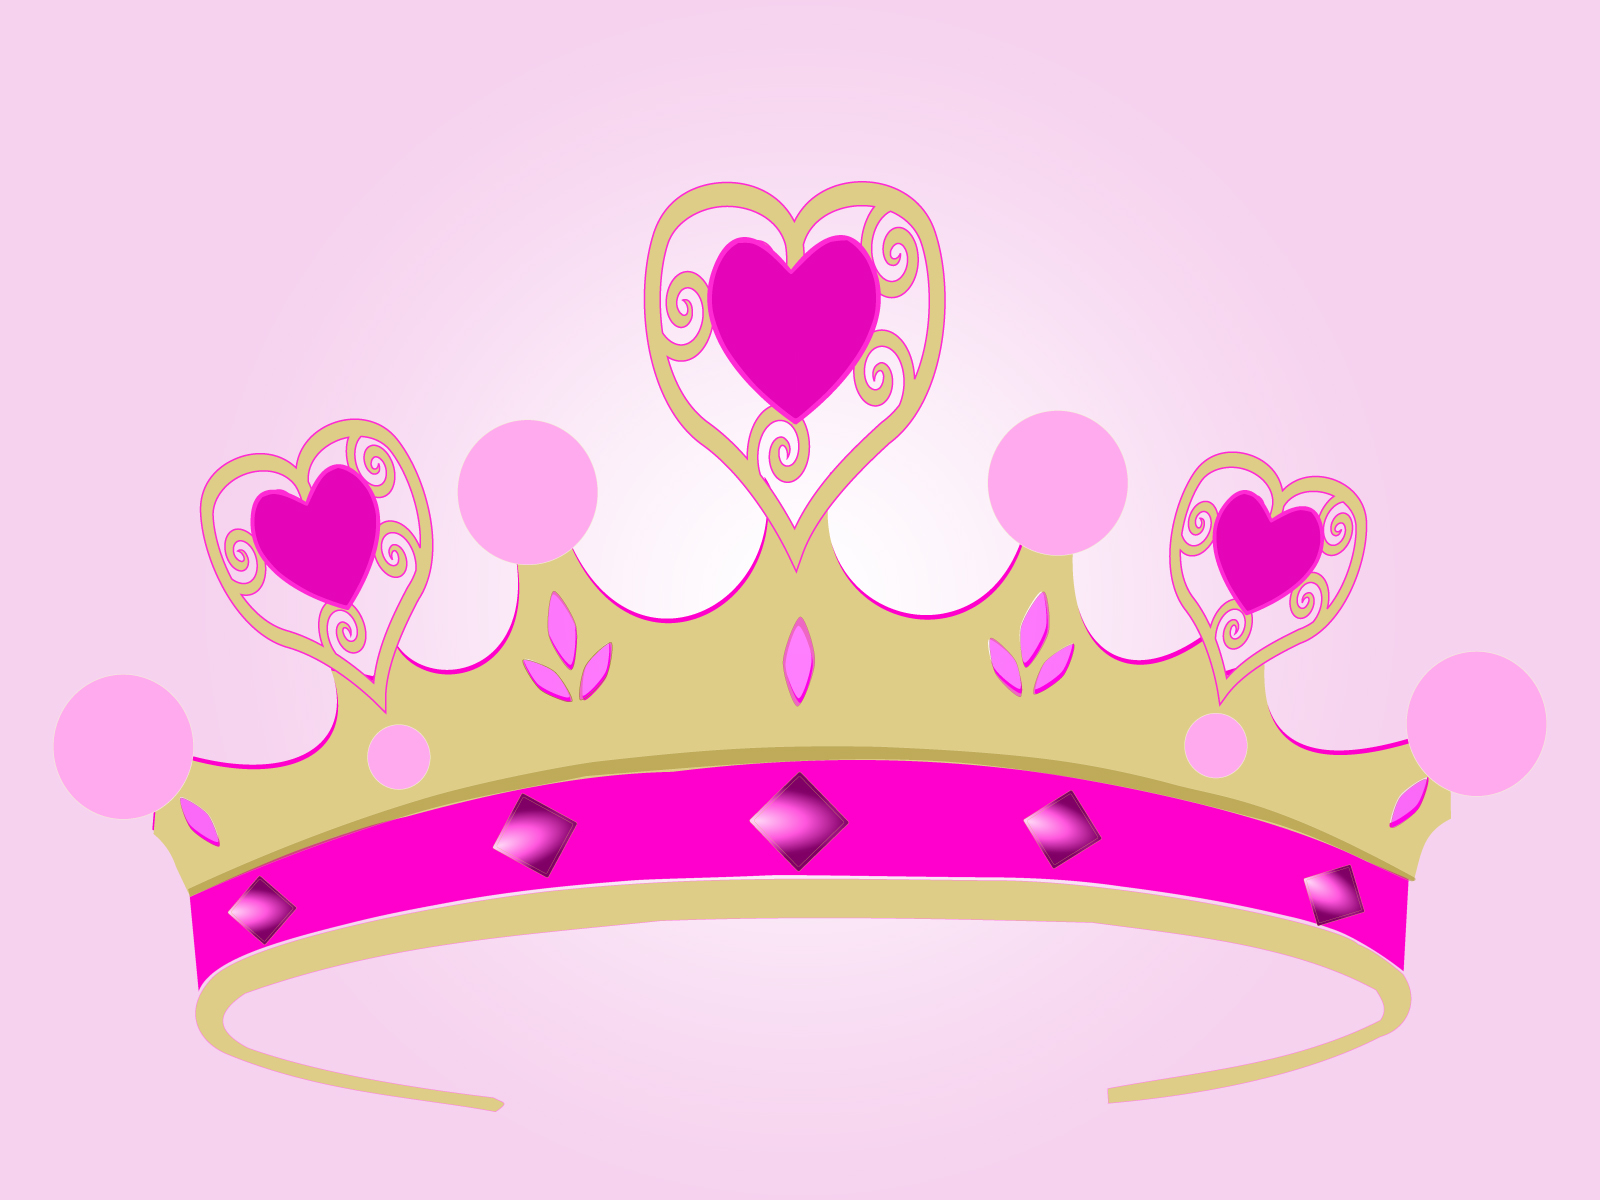 PrincessCrownPowerpointBackgrounds.jpg (1600×1200